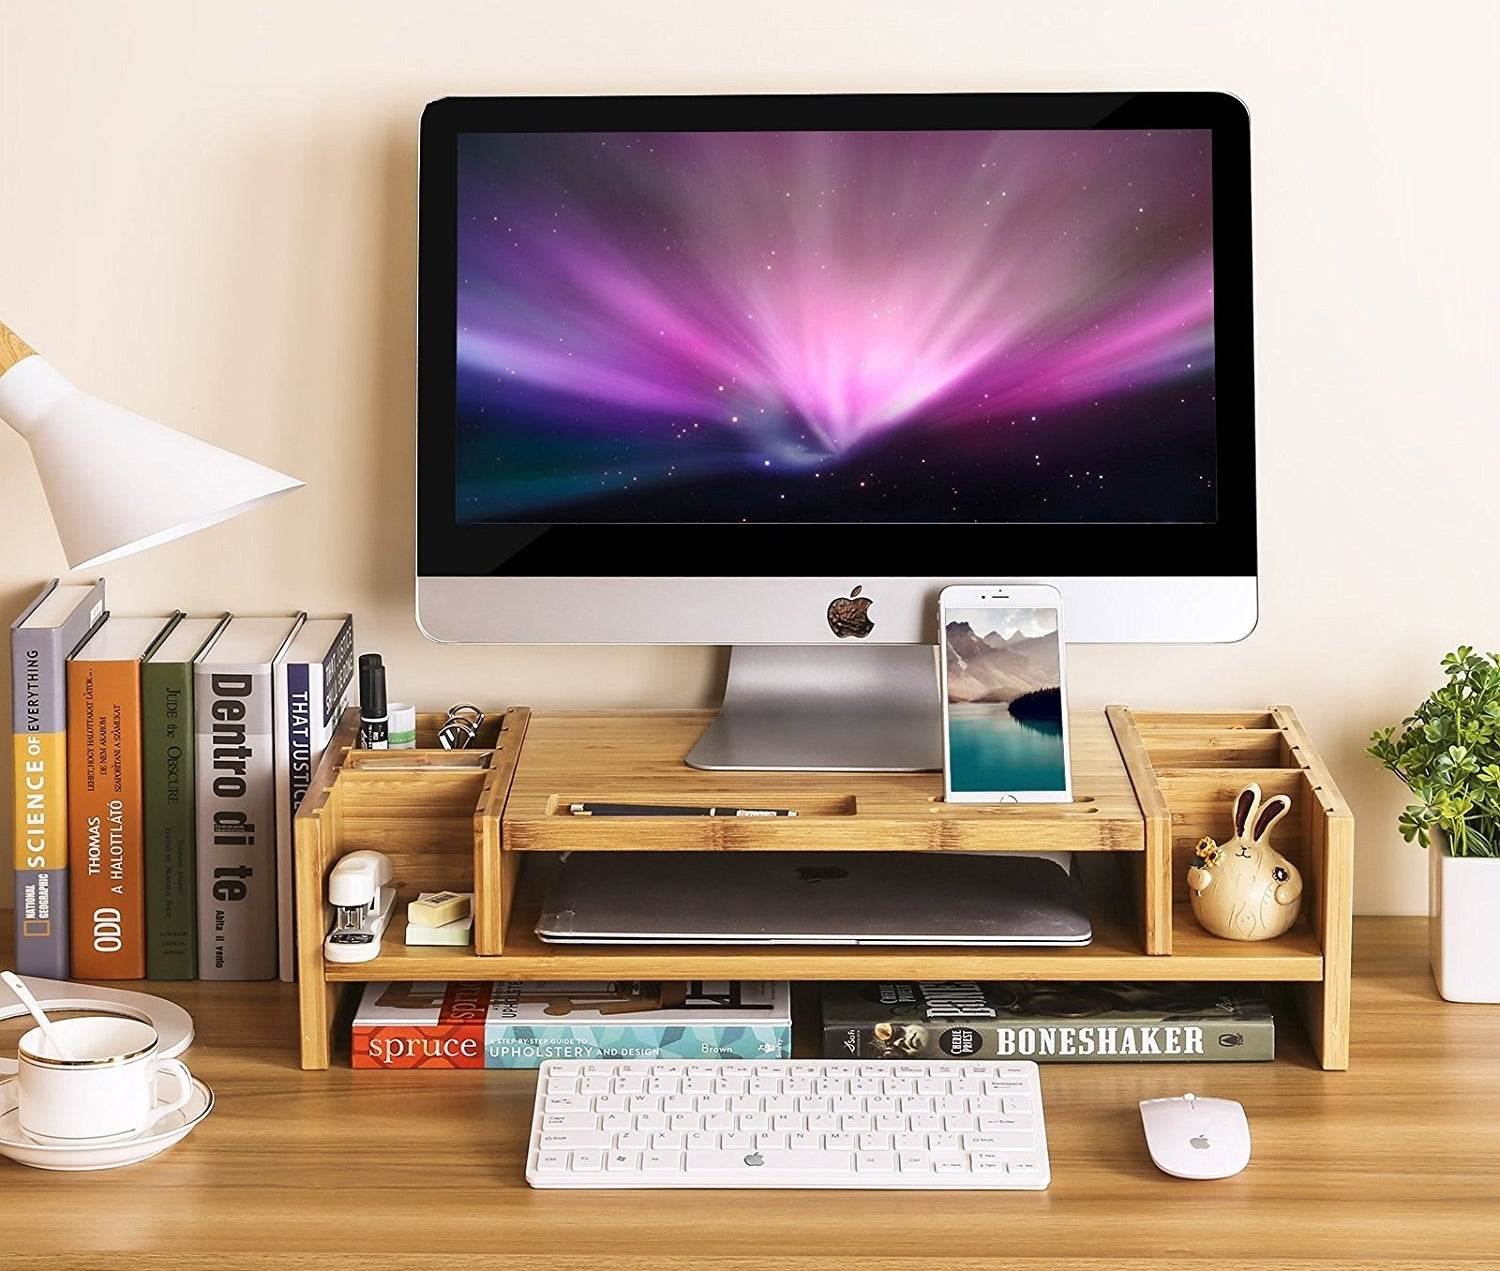 The monitor stand